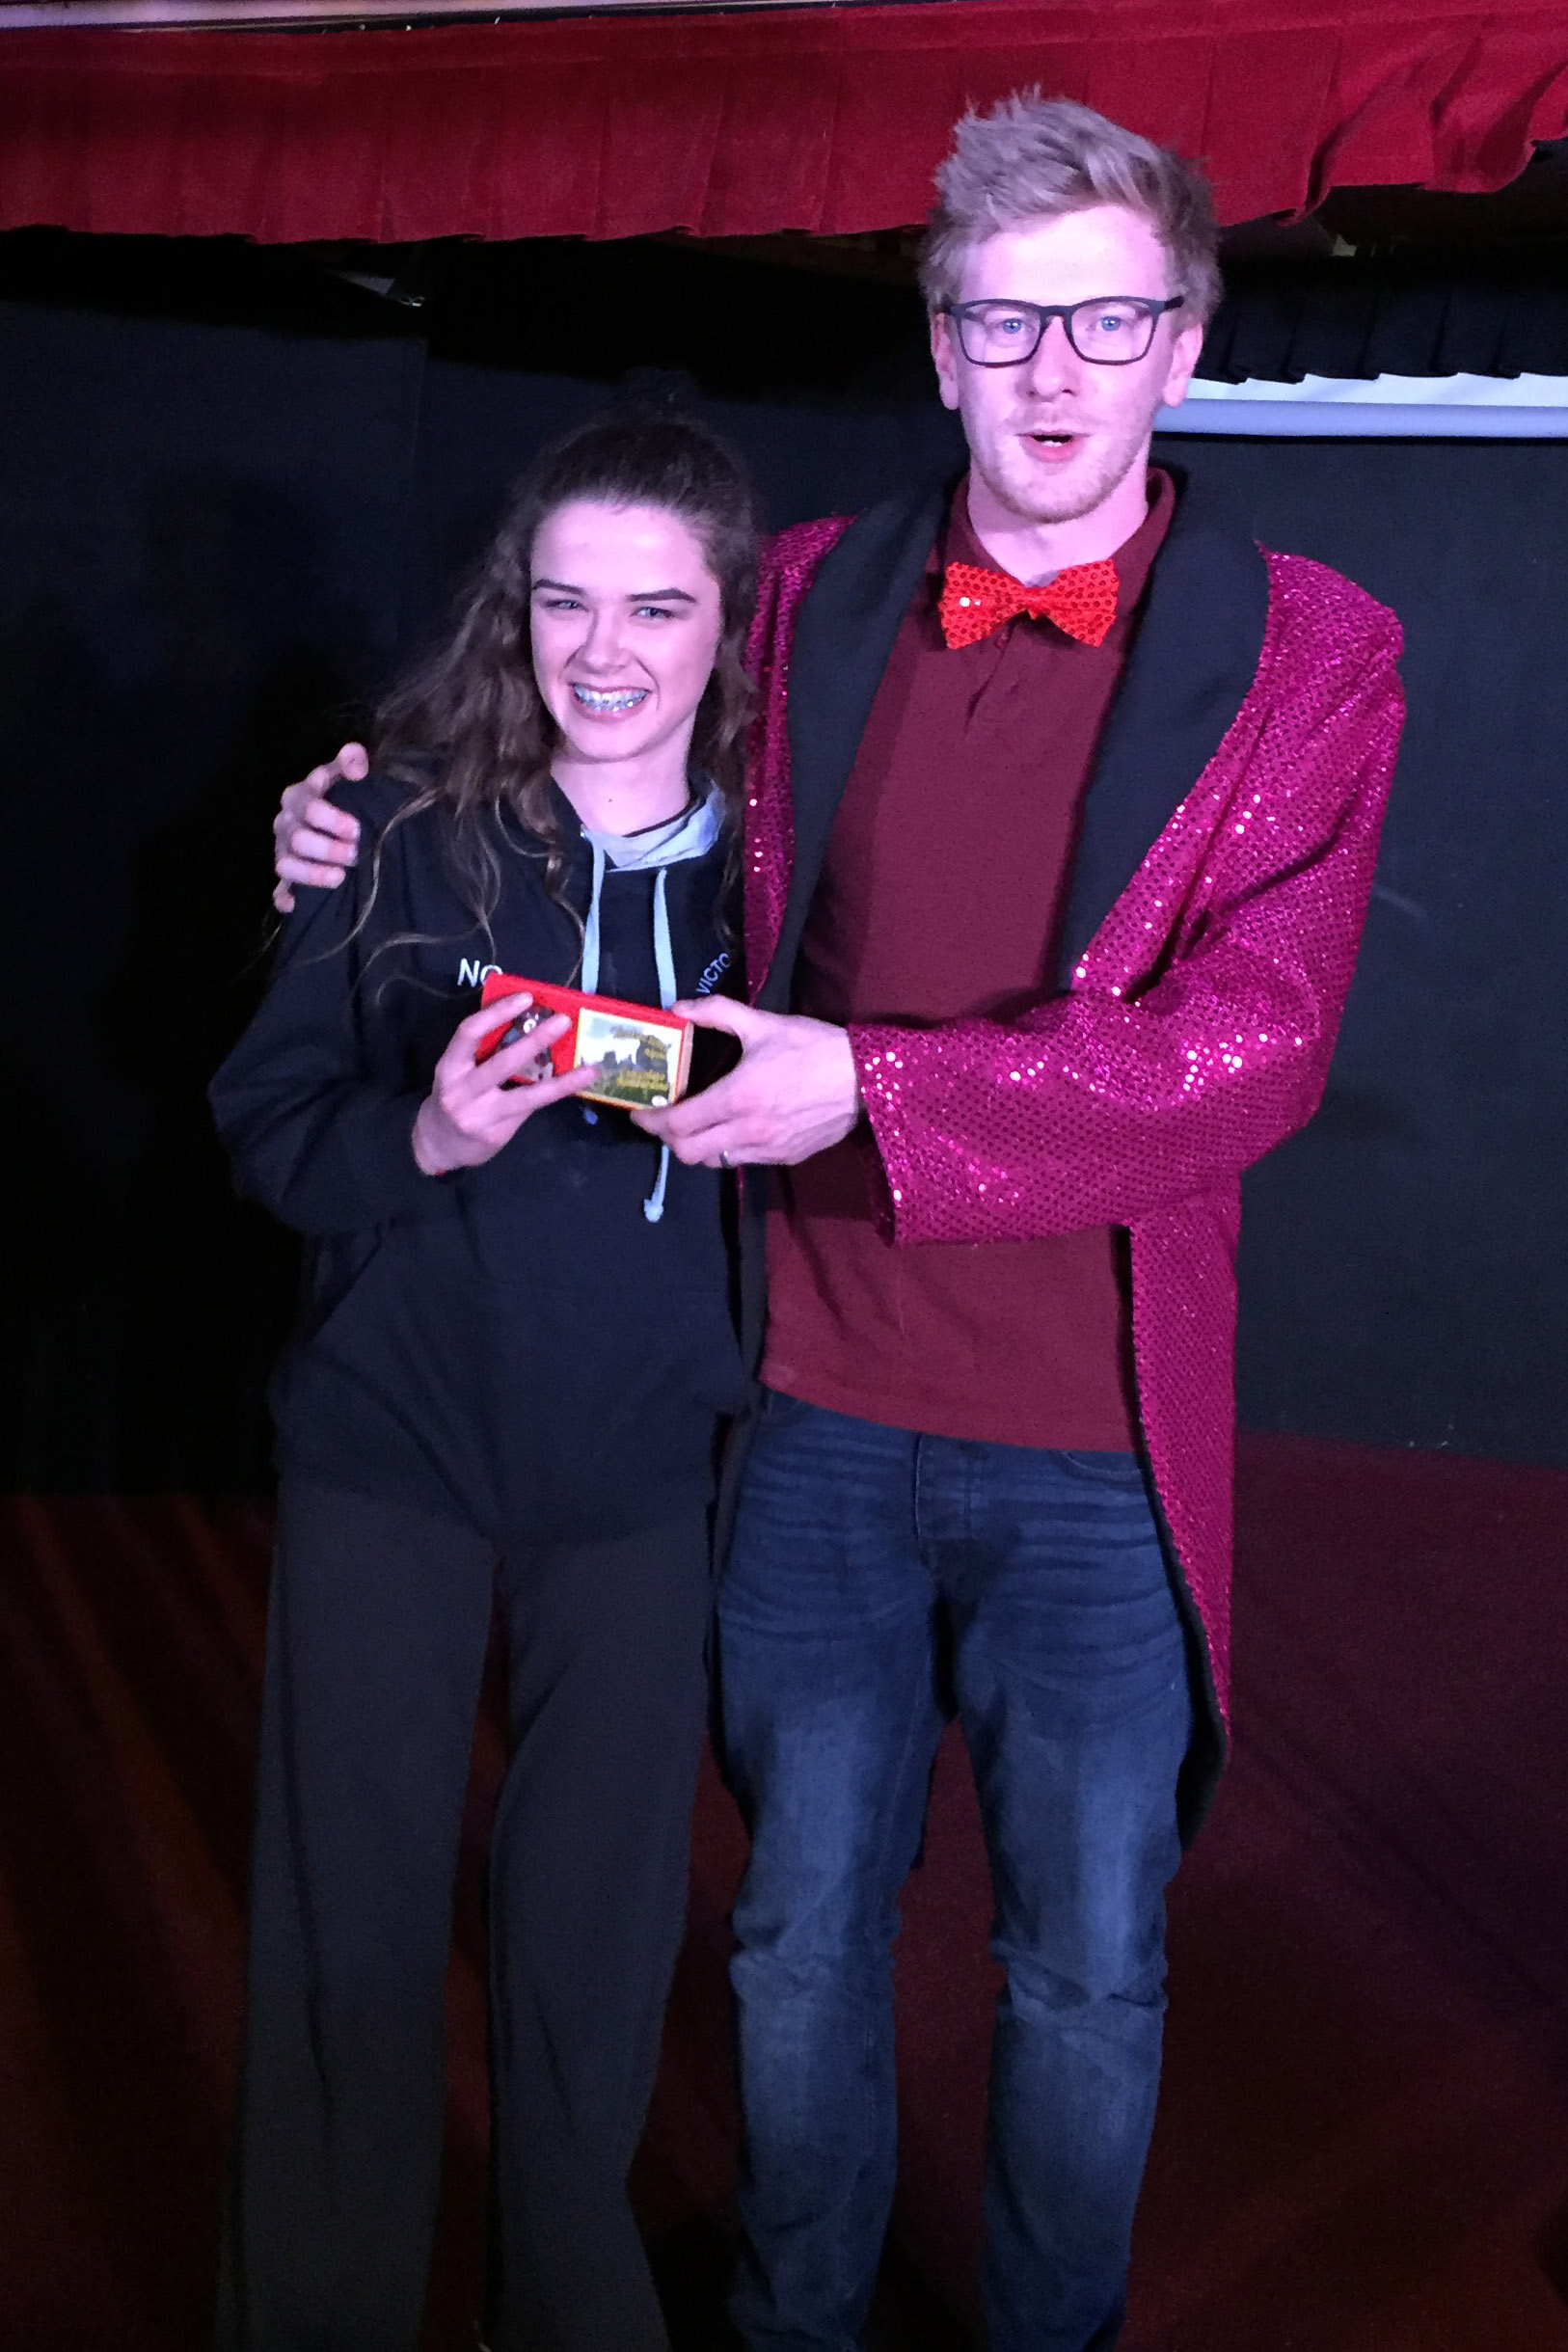 Naoise - Most Improved Intermediate